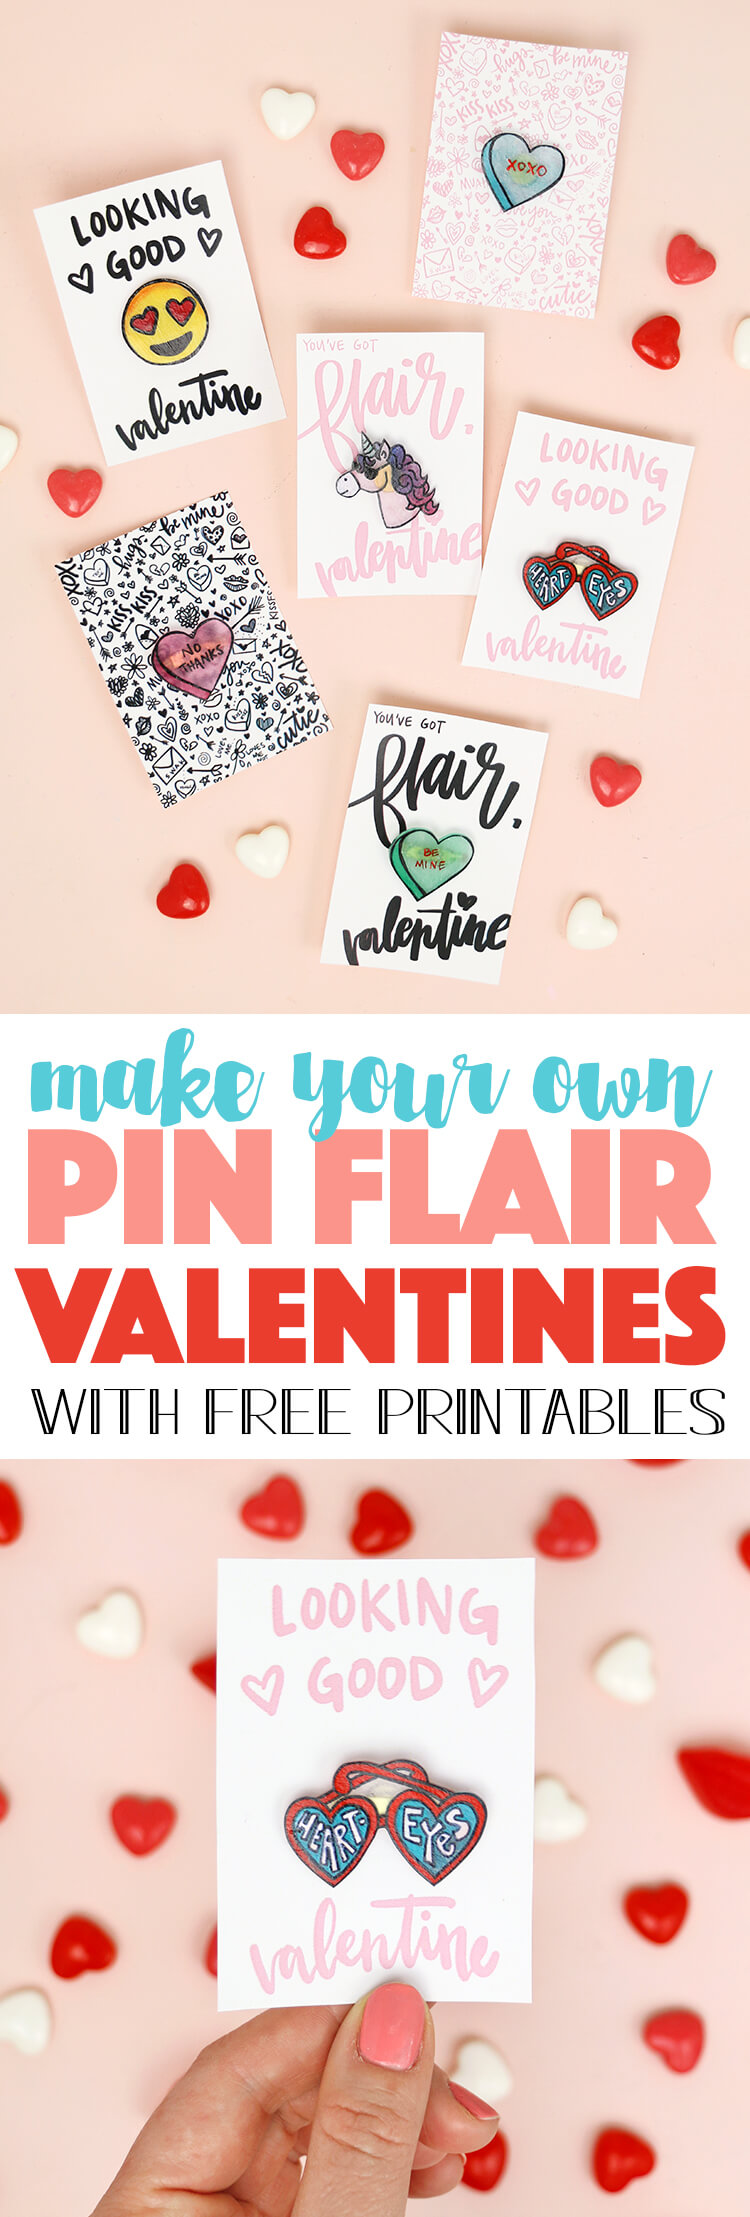 how to make pins! DIY method for making cute enamel style pins - they make the cutest valentines too! (Free printable pin valentines!)